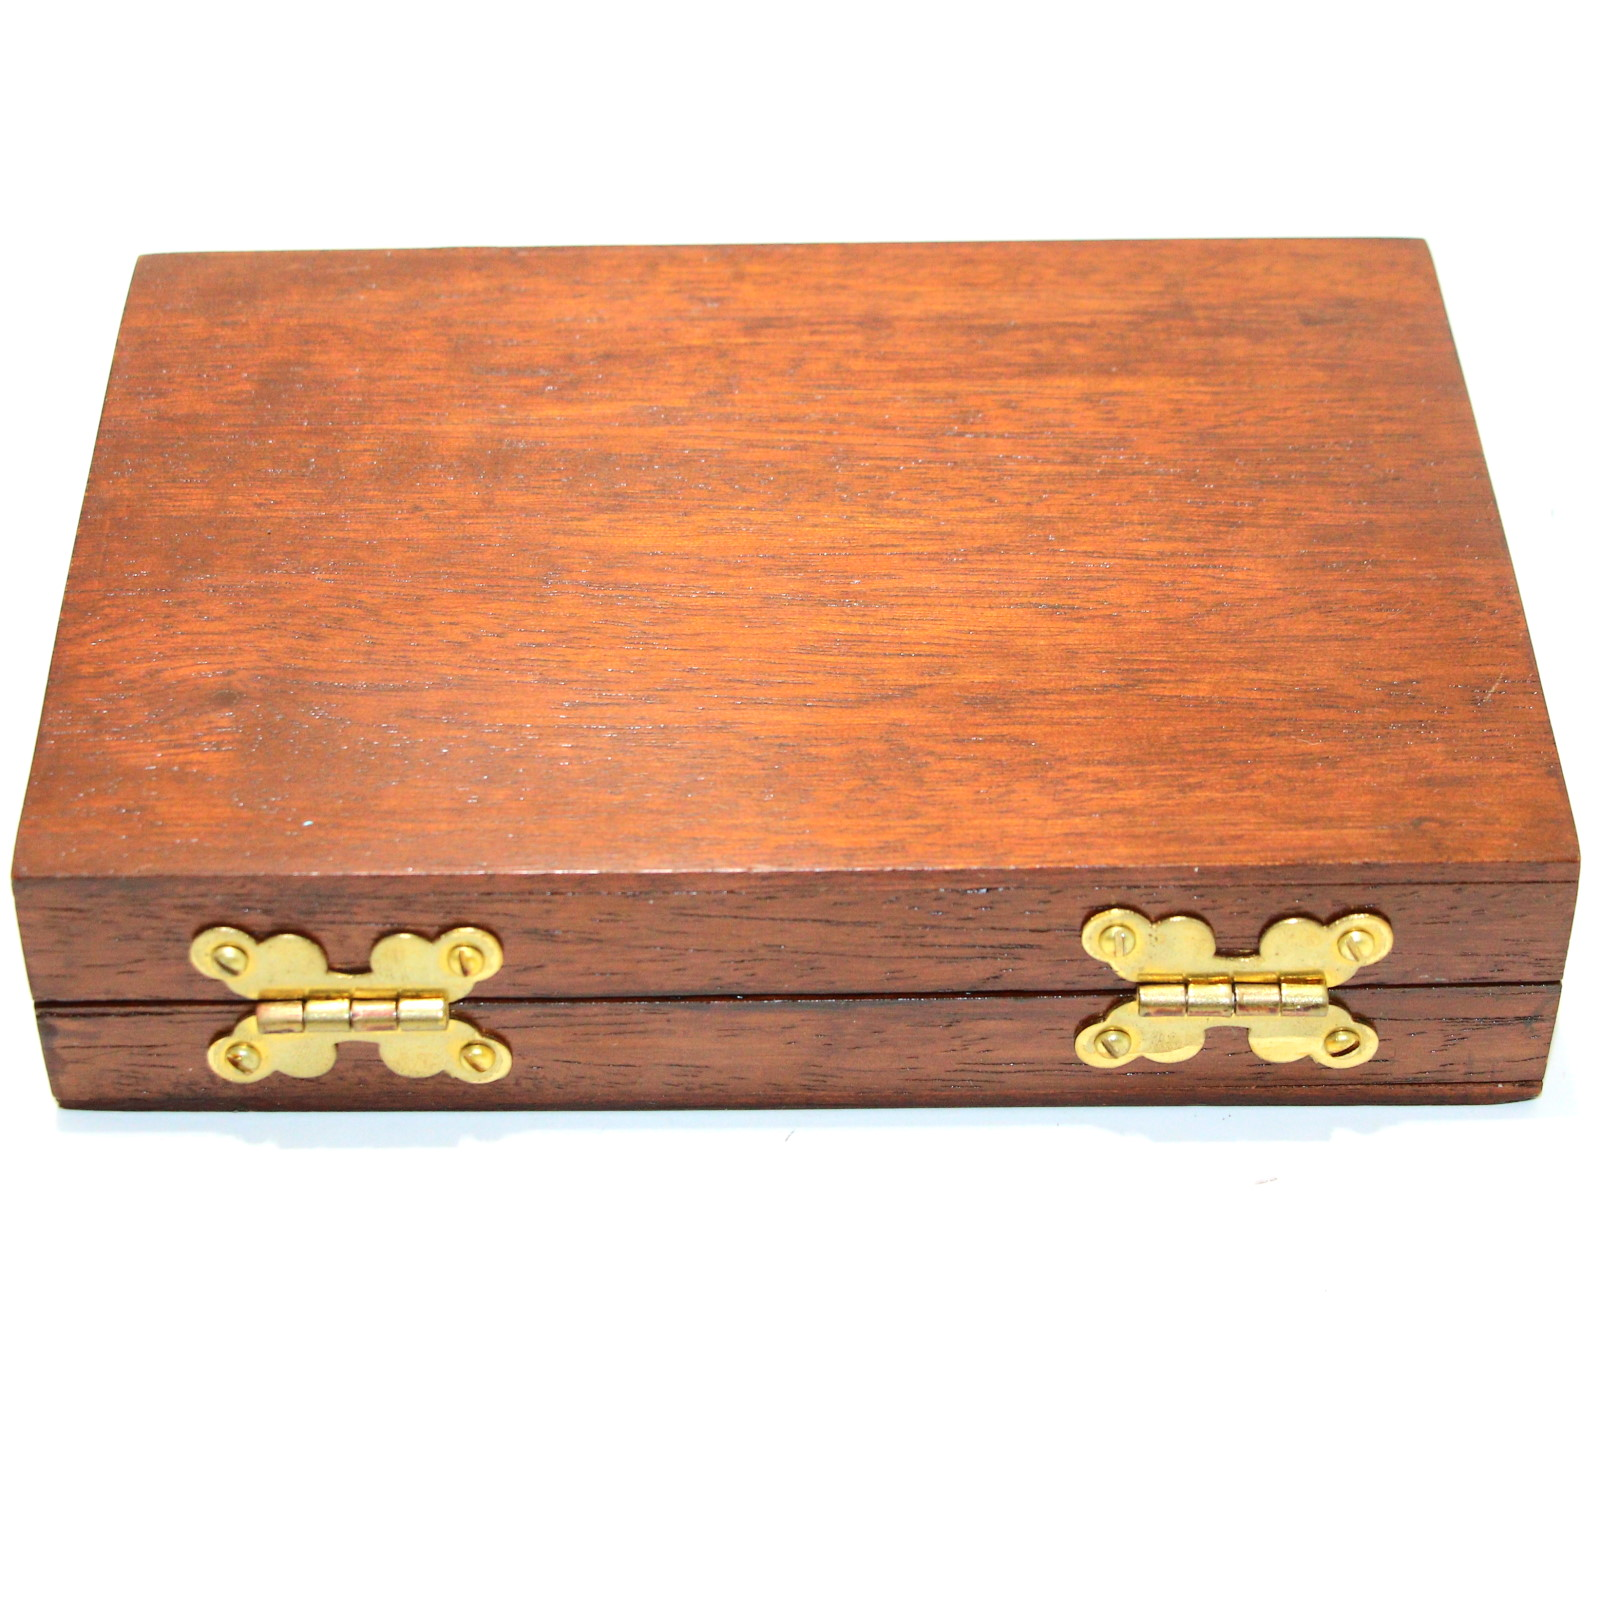 Pimpernel Card Box (Version 2) by Peter Scarlett